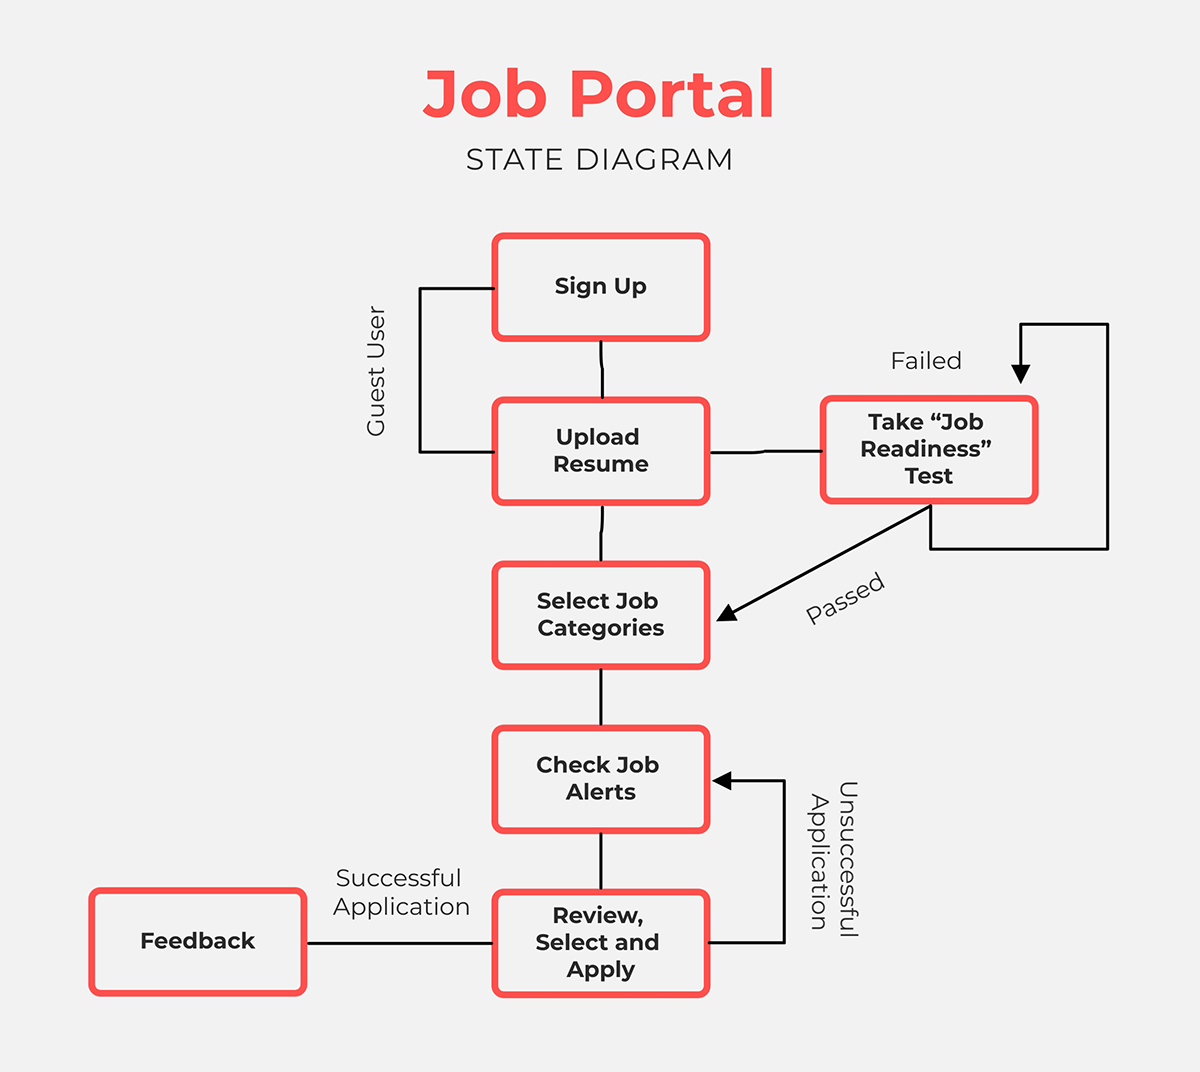 A job portal state diagram template available in Visme.